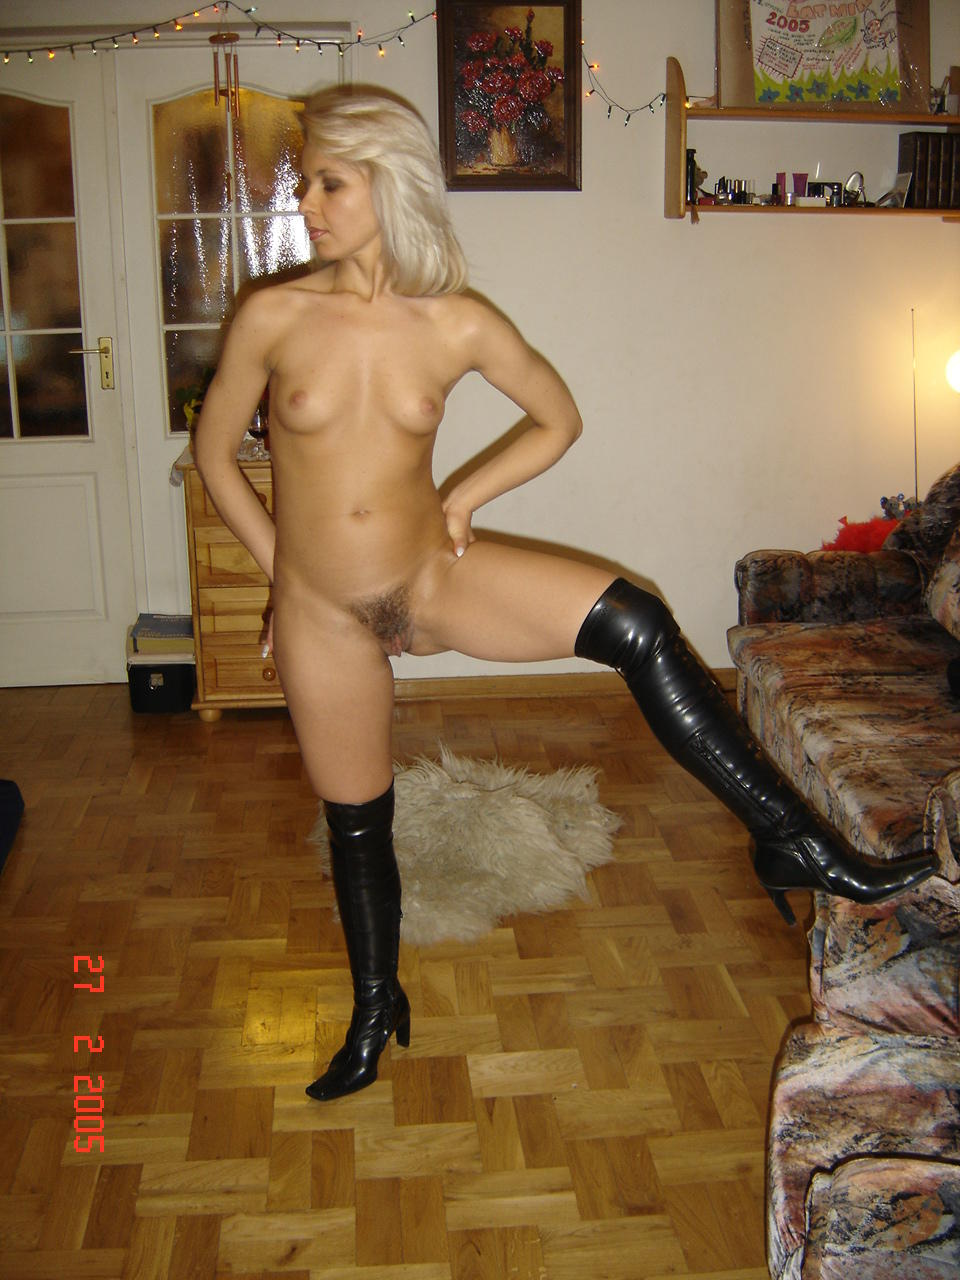 Amateur Boots Porn Galleries amateur sexy milf with hairy pussy russian sexy girls | free